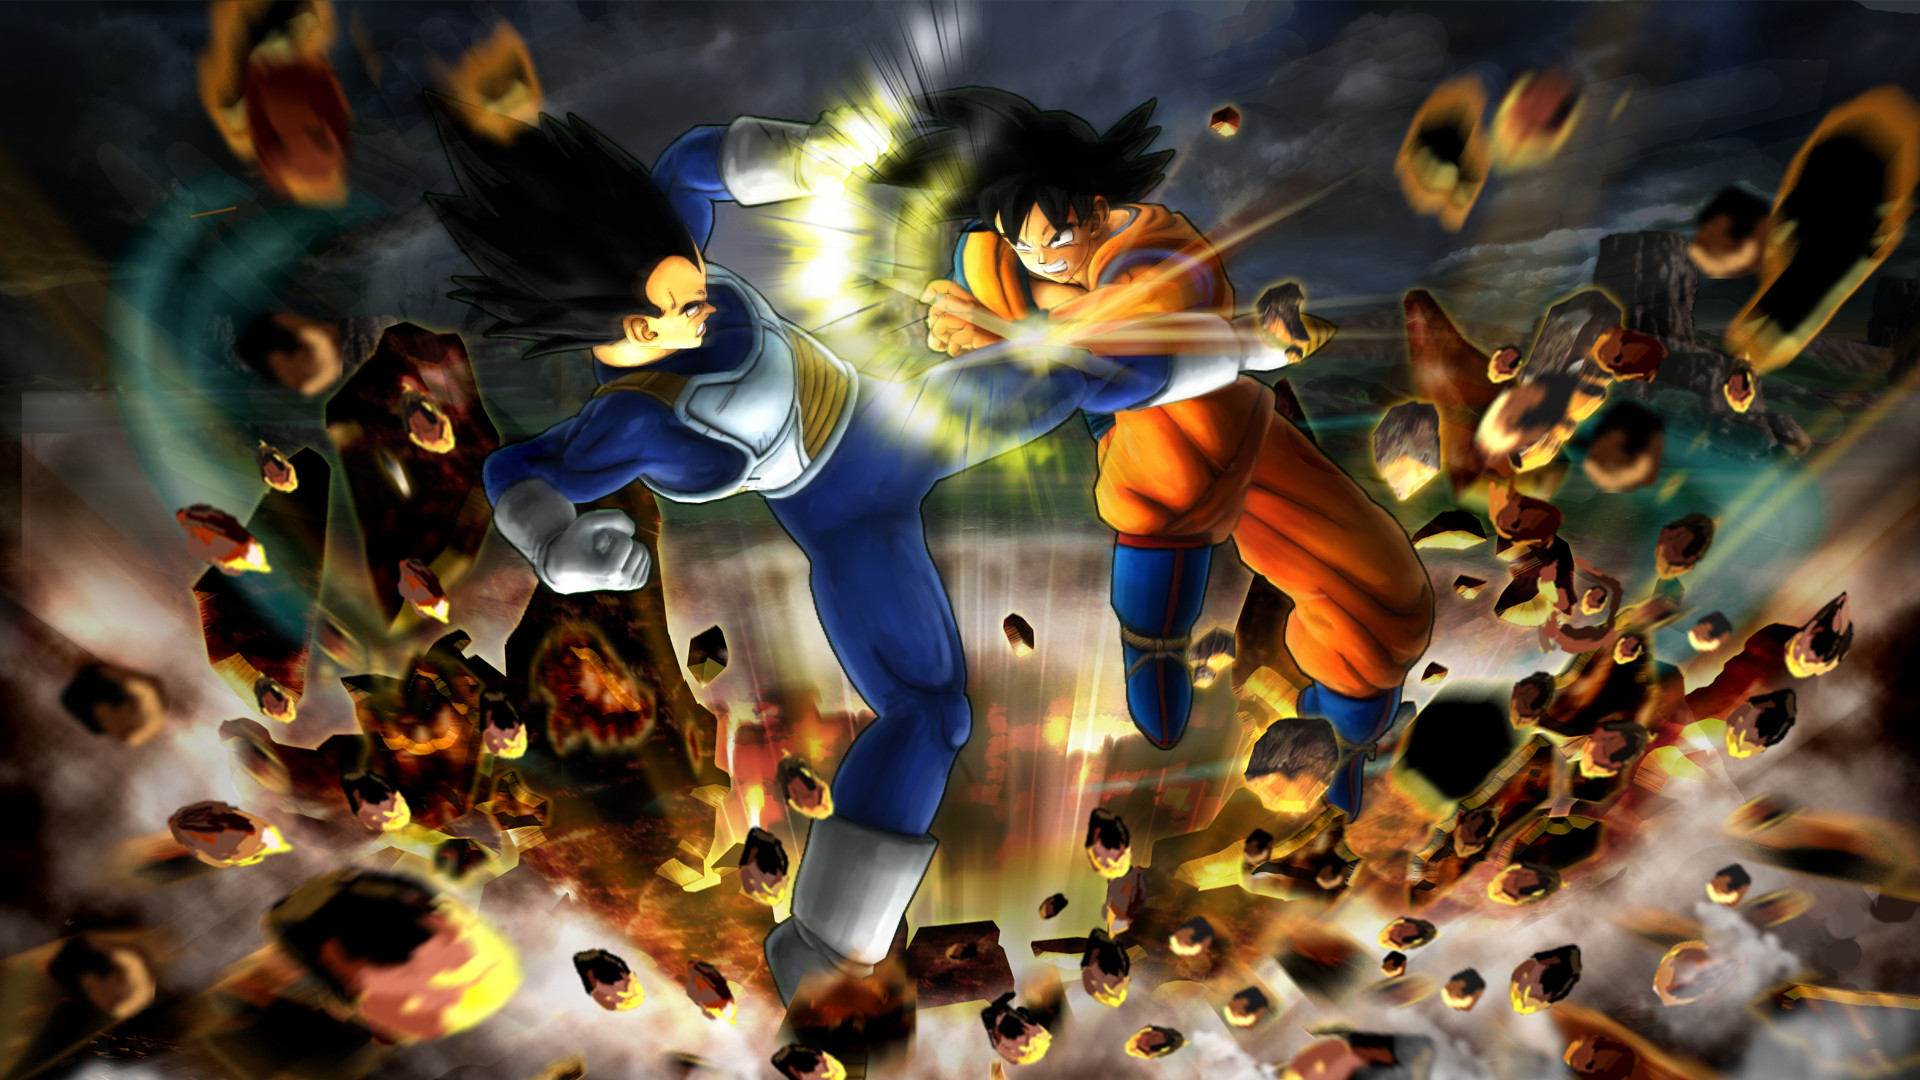 Res: 1920x1080, 3D Fight Wallpaper - Dragon Ball Z Wallpapers HD Anime